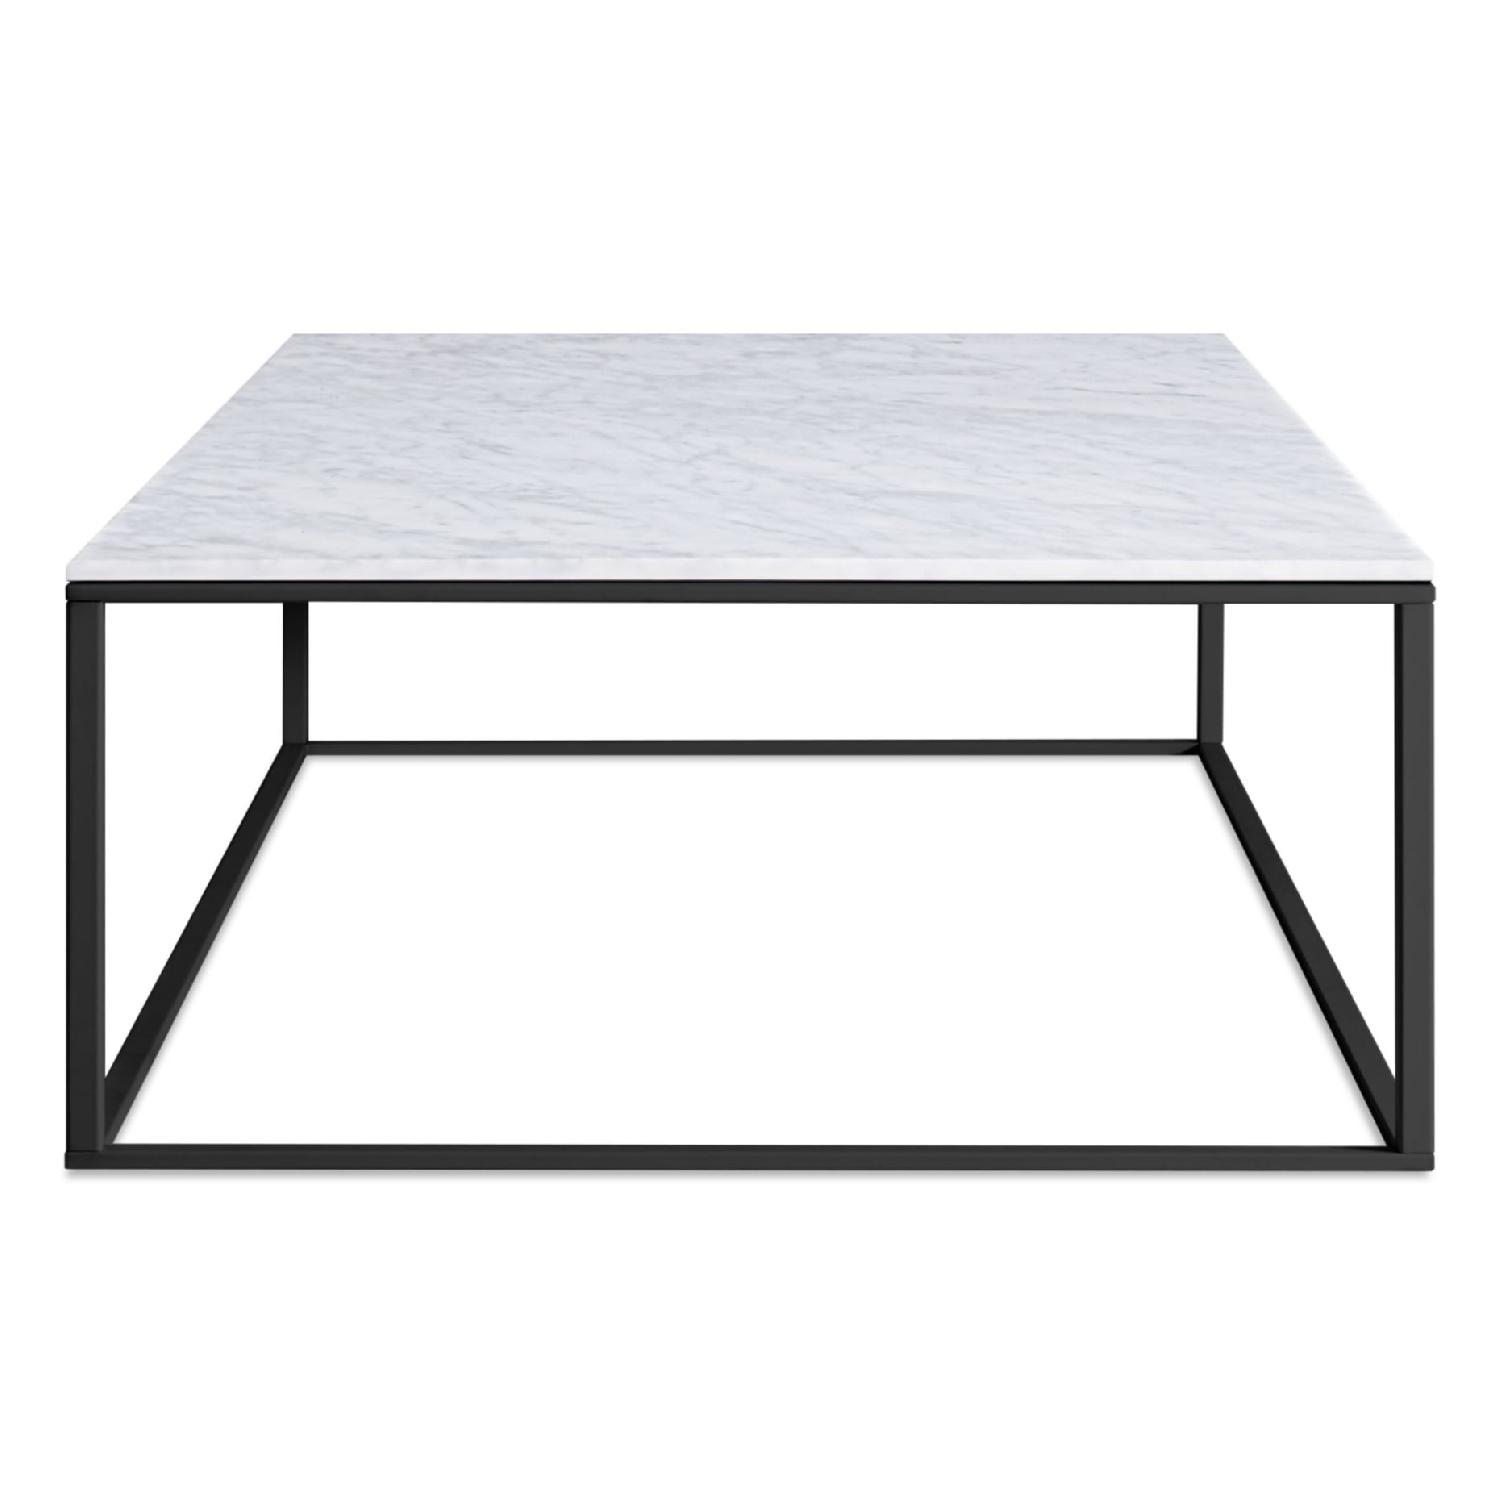 Blu Dot Minimalista Marble Top Coffee Table - image-0